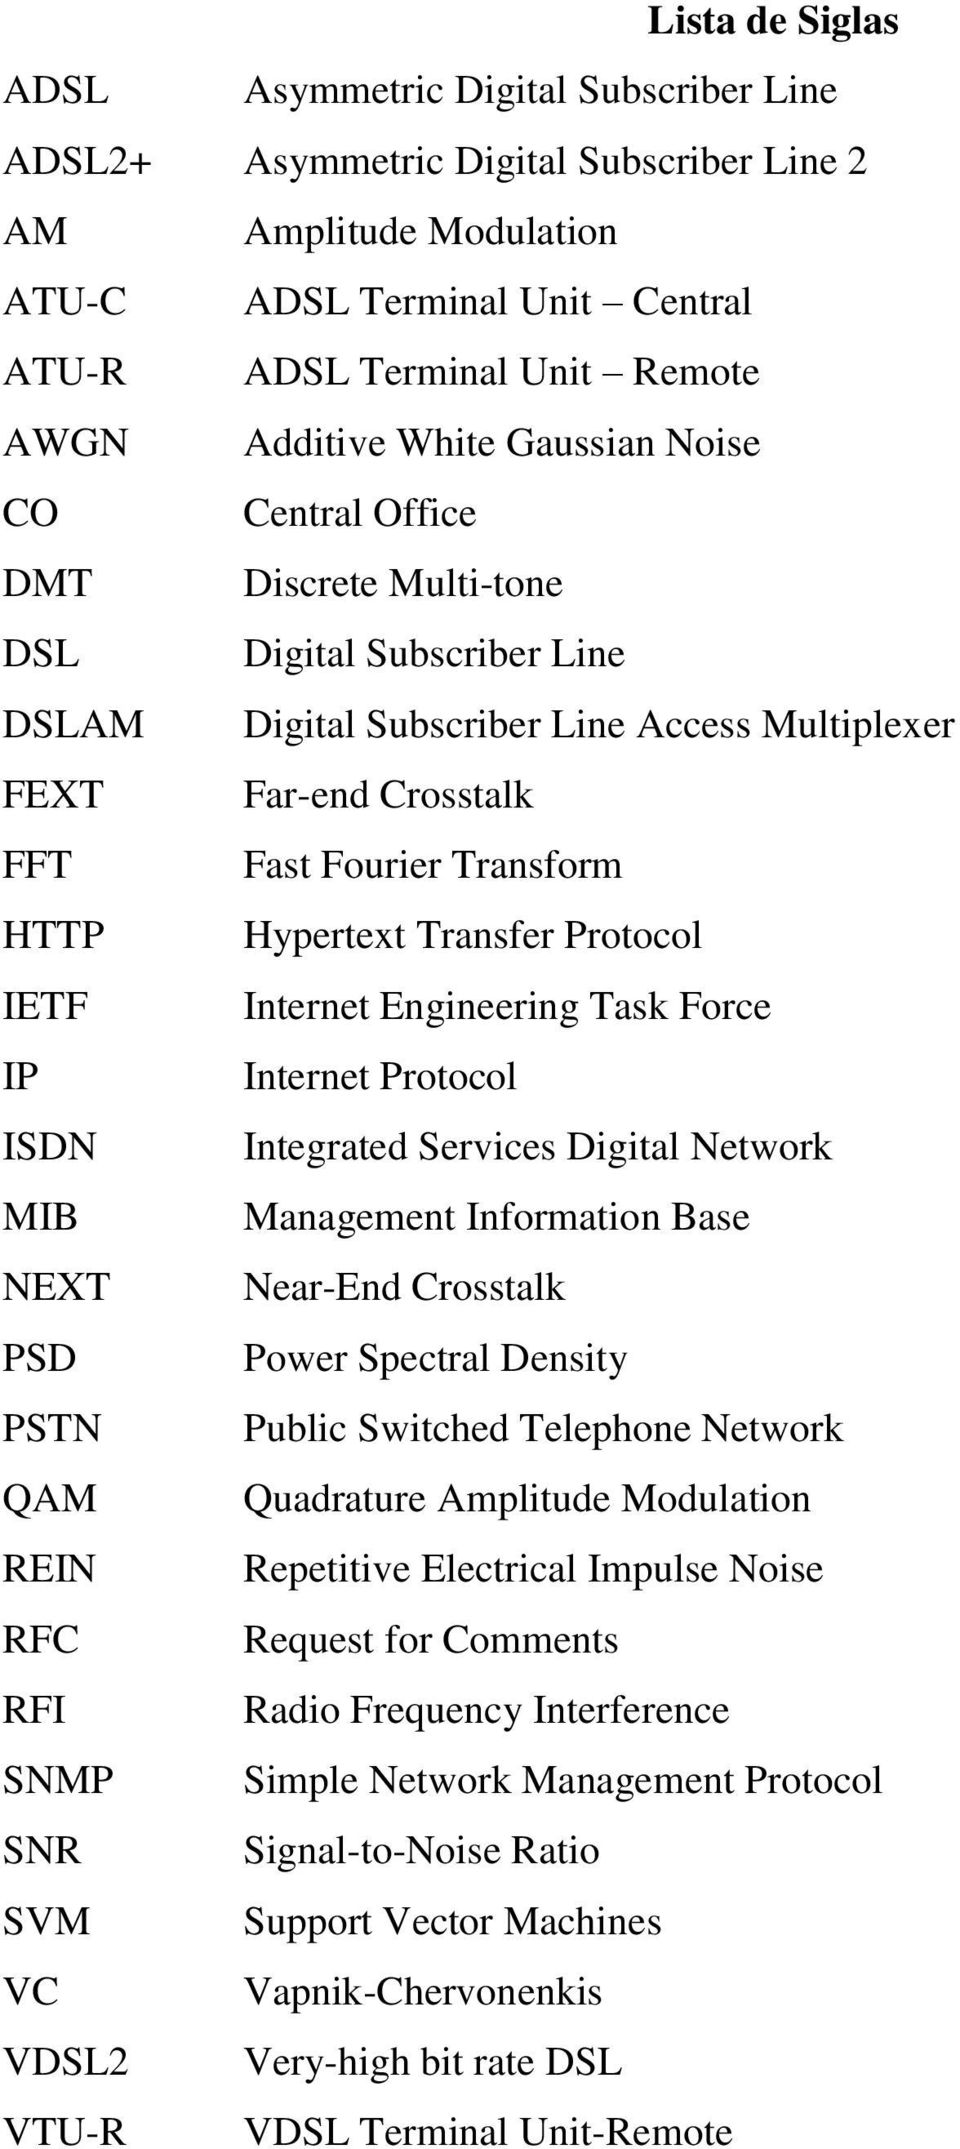 HTTP Hypertext Transfer Protocol IETF Internet Engineering Task Force IP Internet Protocol ISDN Integrated Services Digital Network MIB Management Information Base NEXT Near-End Crosstalk PSD Power